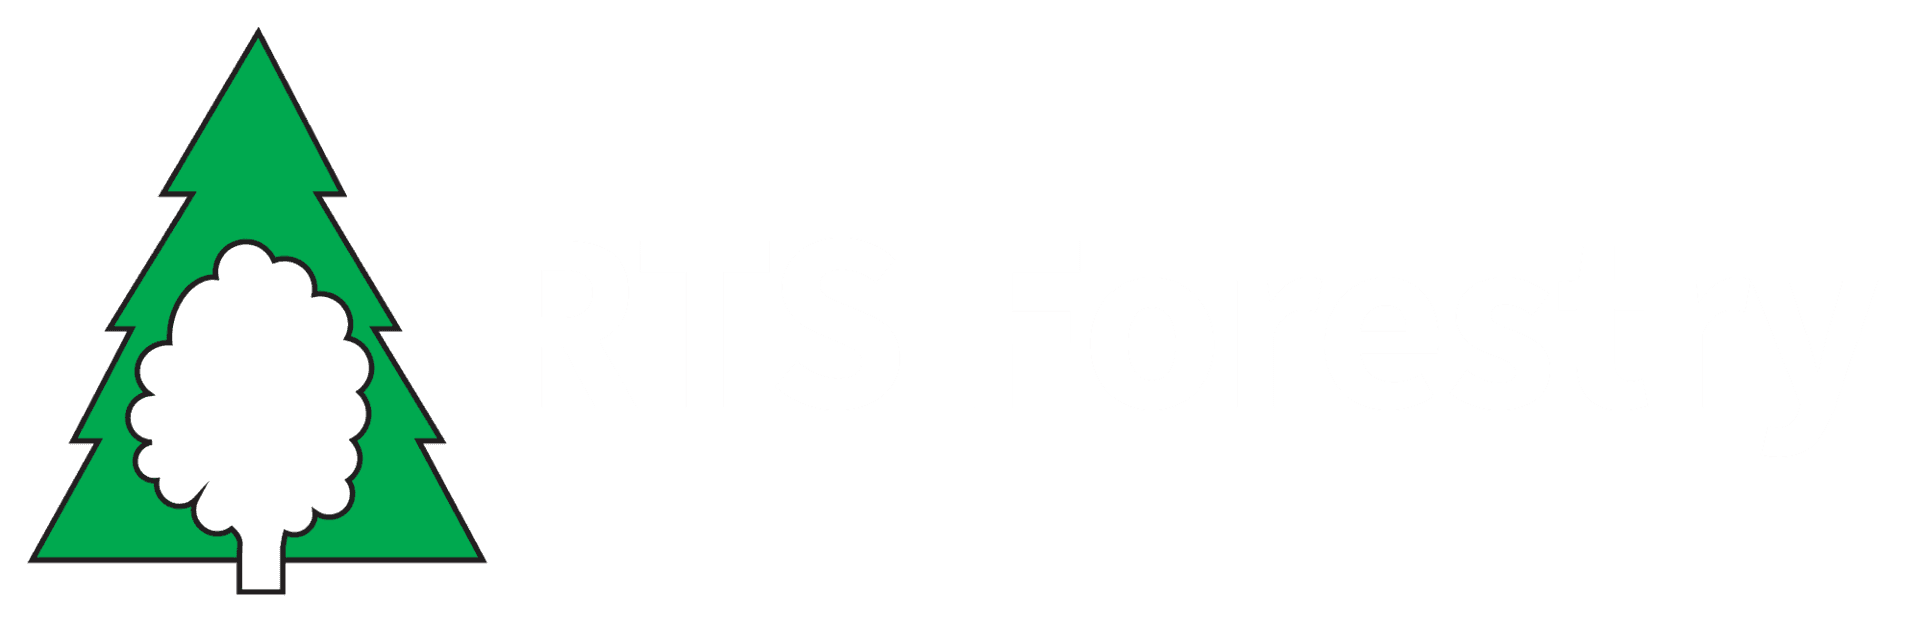 RTS Forestry logo